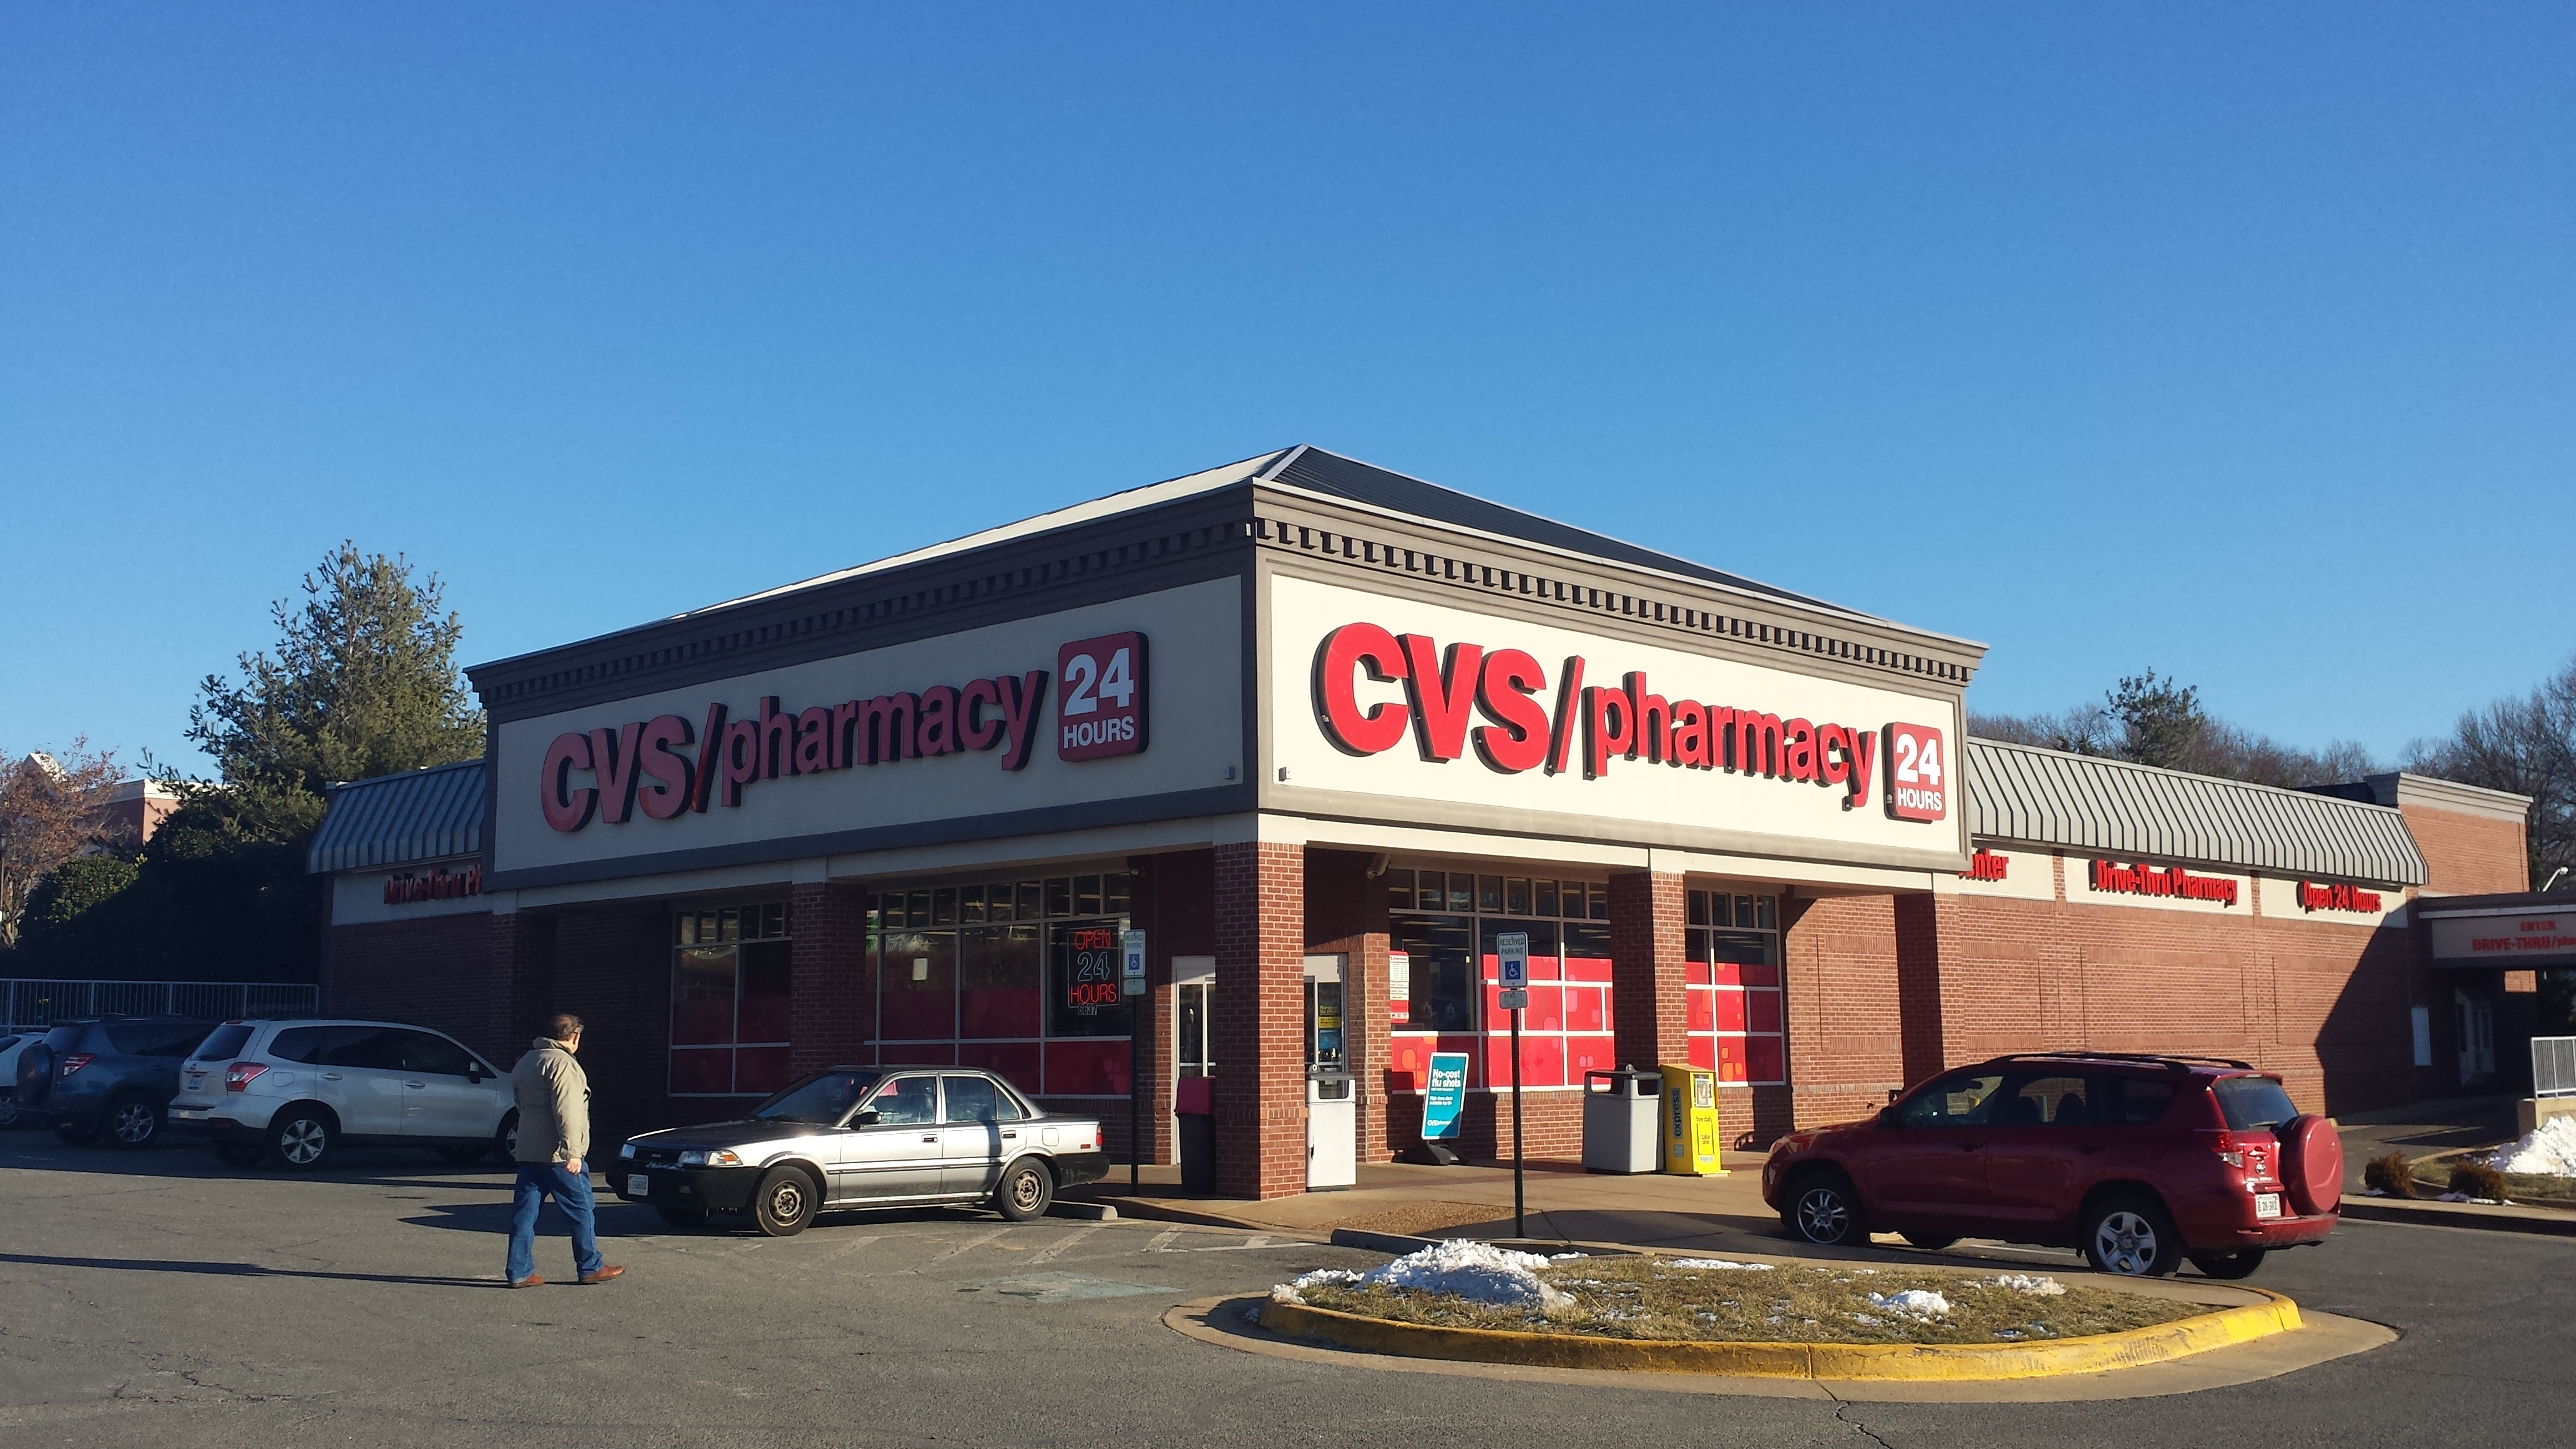 CVS Palmetto, FL Sold at 7 Cap